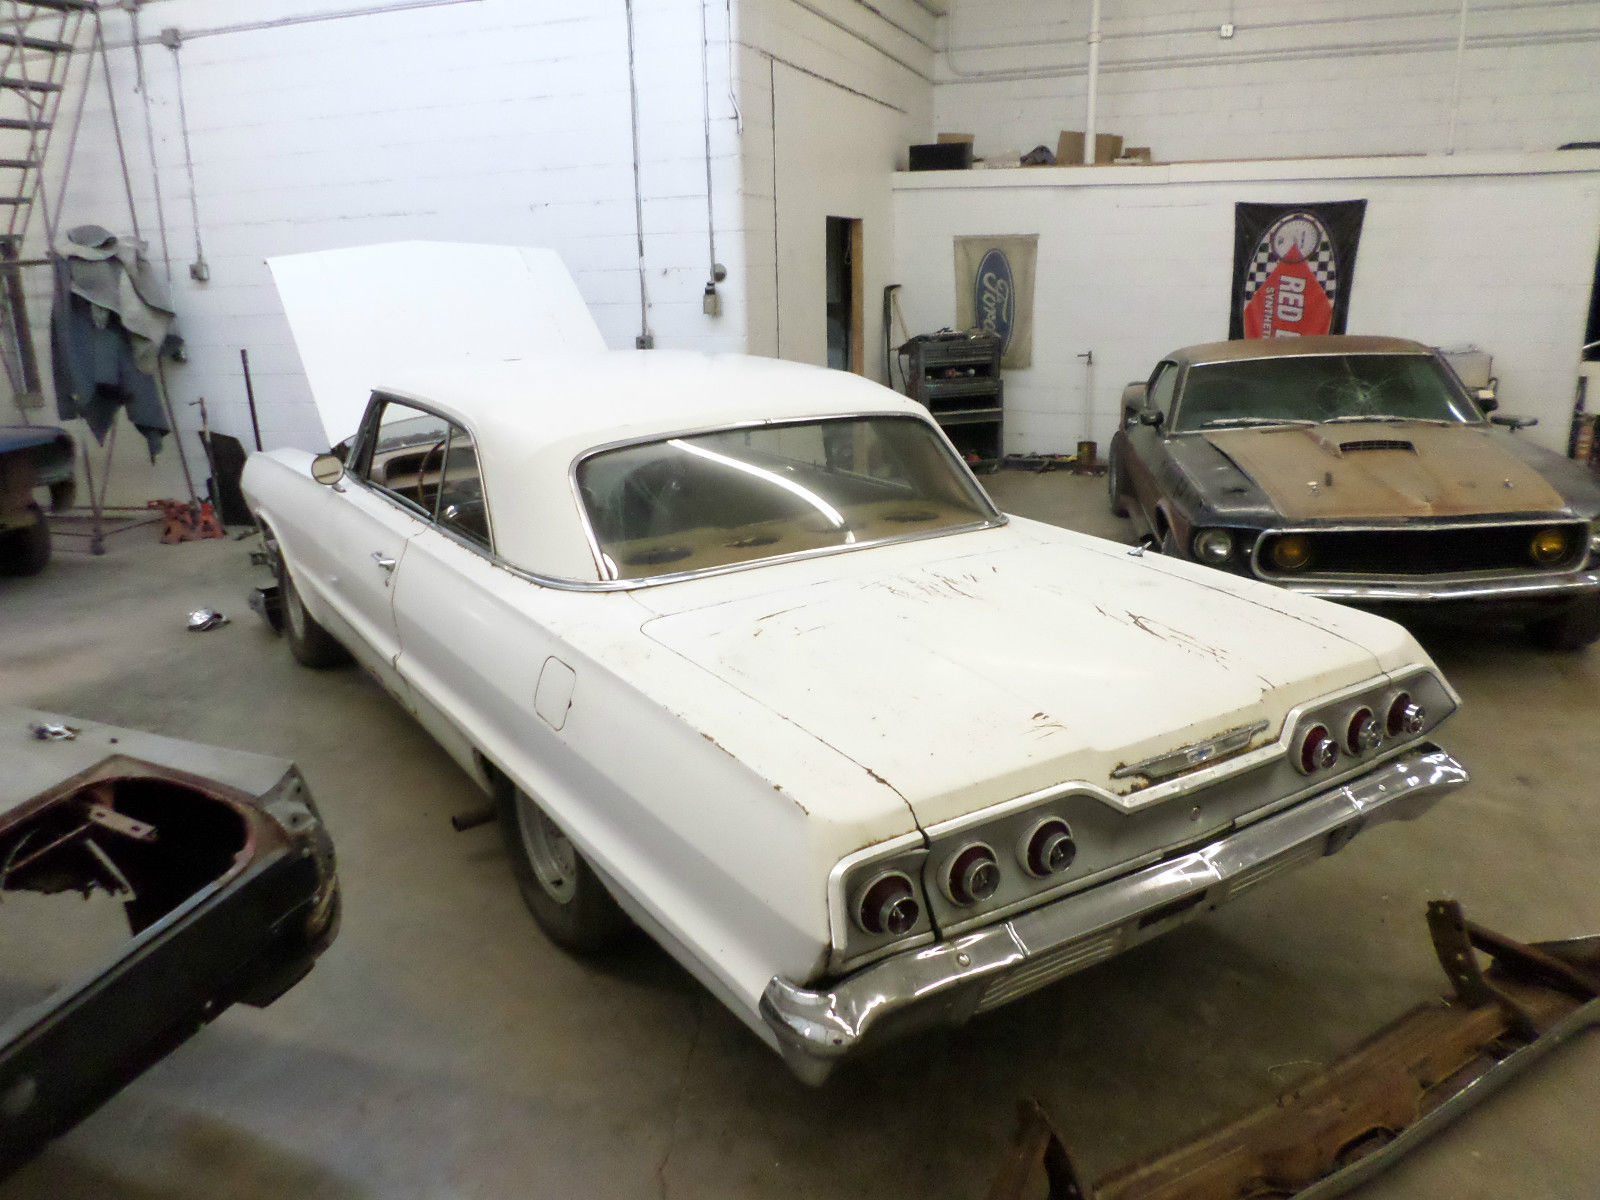 1963 Chevrolet Impala V8 Hotrod Project Car For Sale